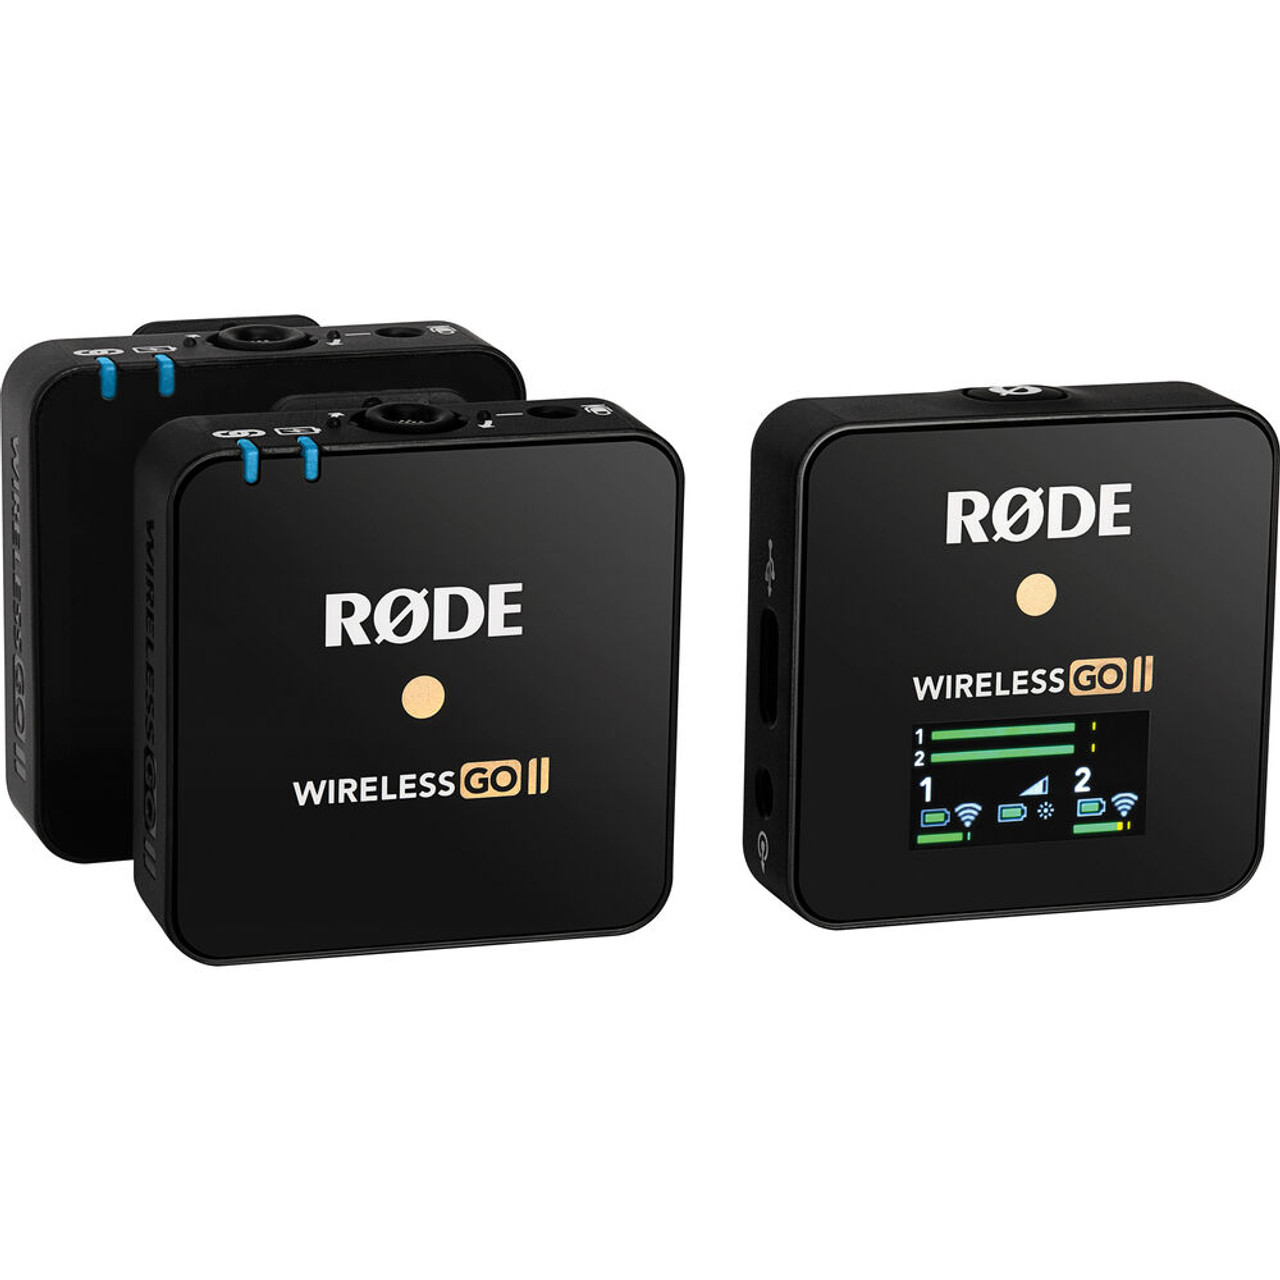 Rode Wireless GO II 2-Person Compact Digital Wireless Microphone System/Recorder (2.4 GHz Black)